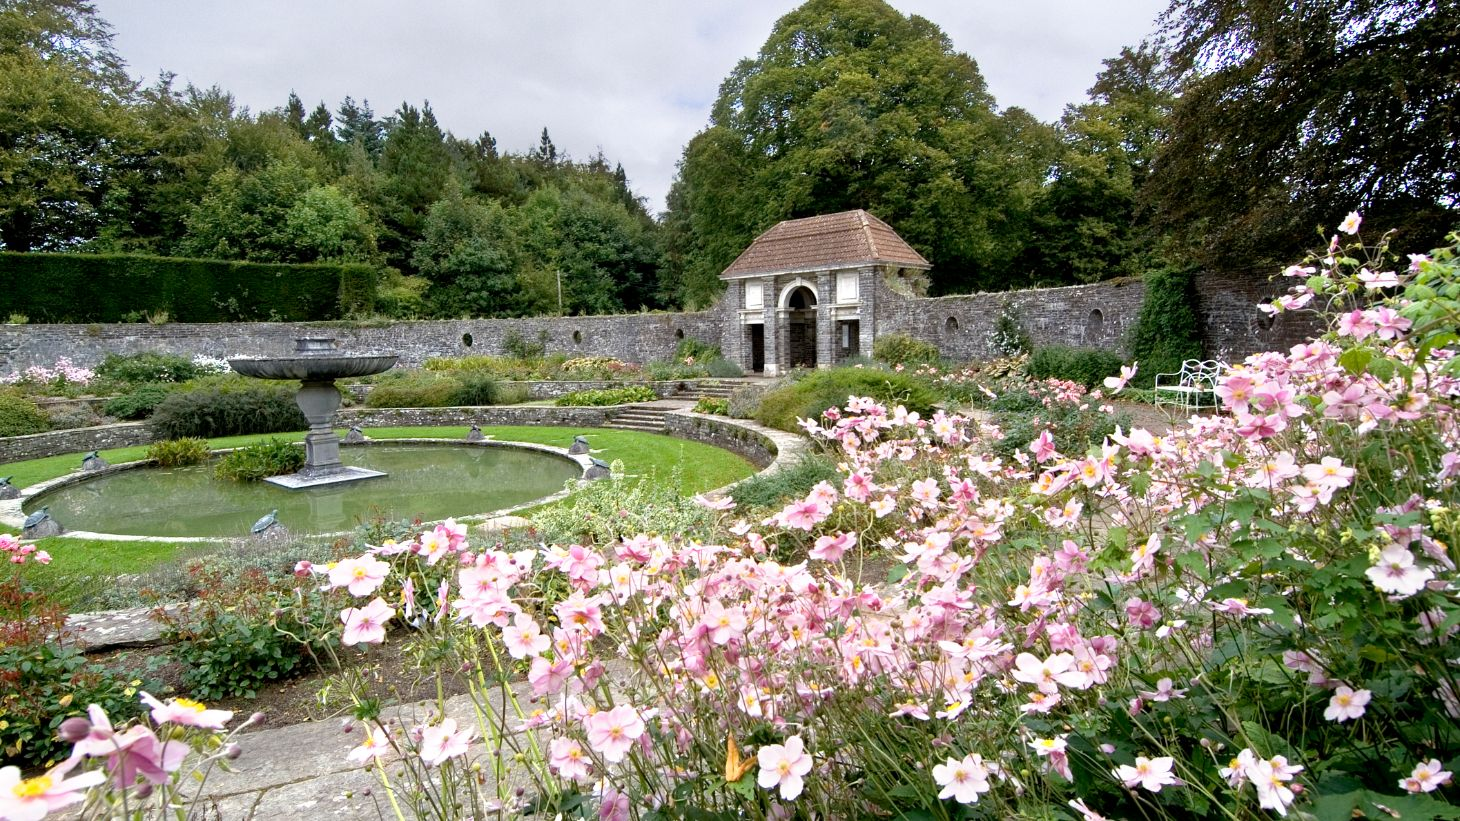 Soak up the romance of Haywood gardens.